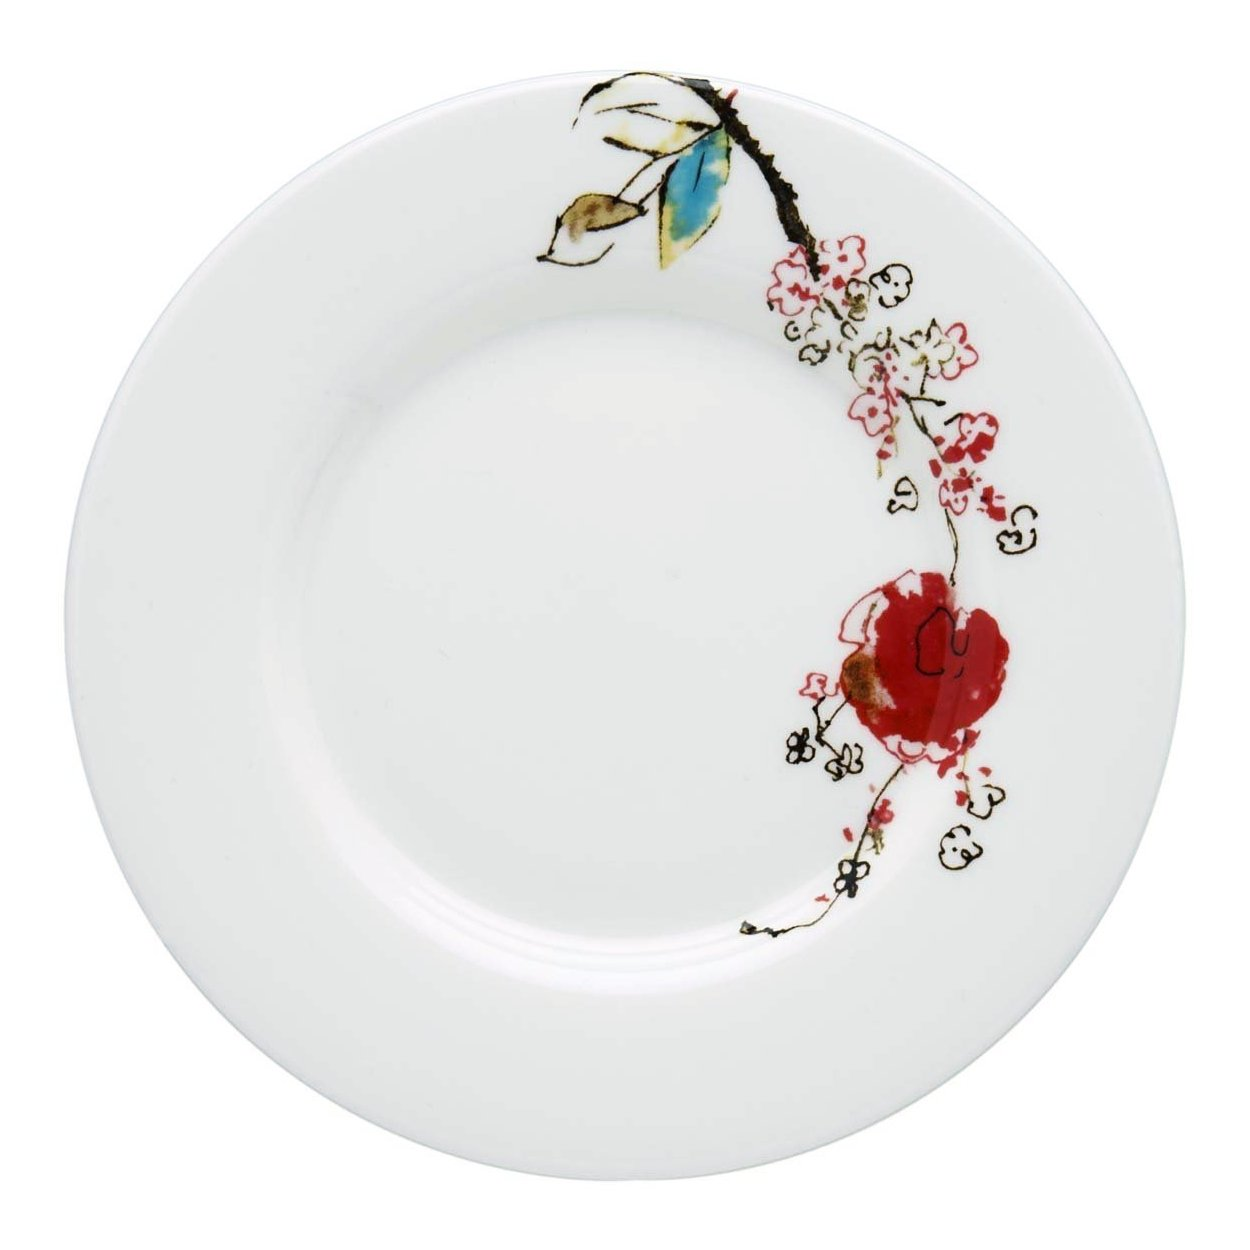 Lenox Simply Fine Chirp 5.75 Inch Saucer, Set of 4